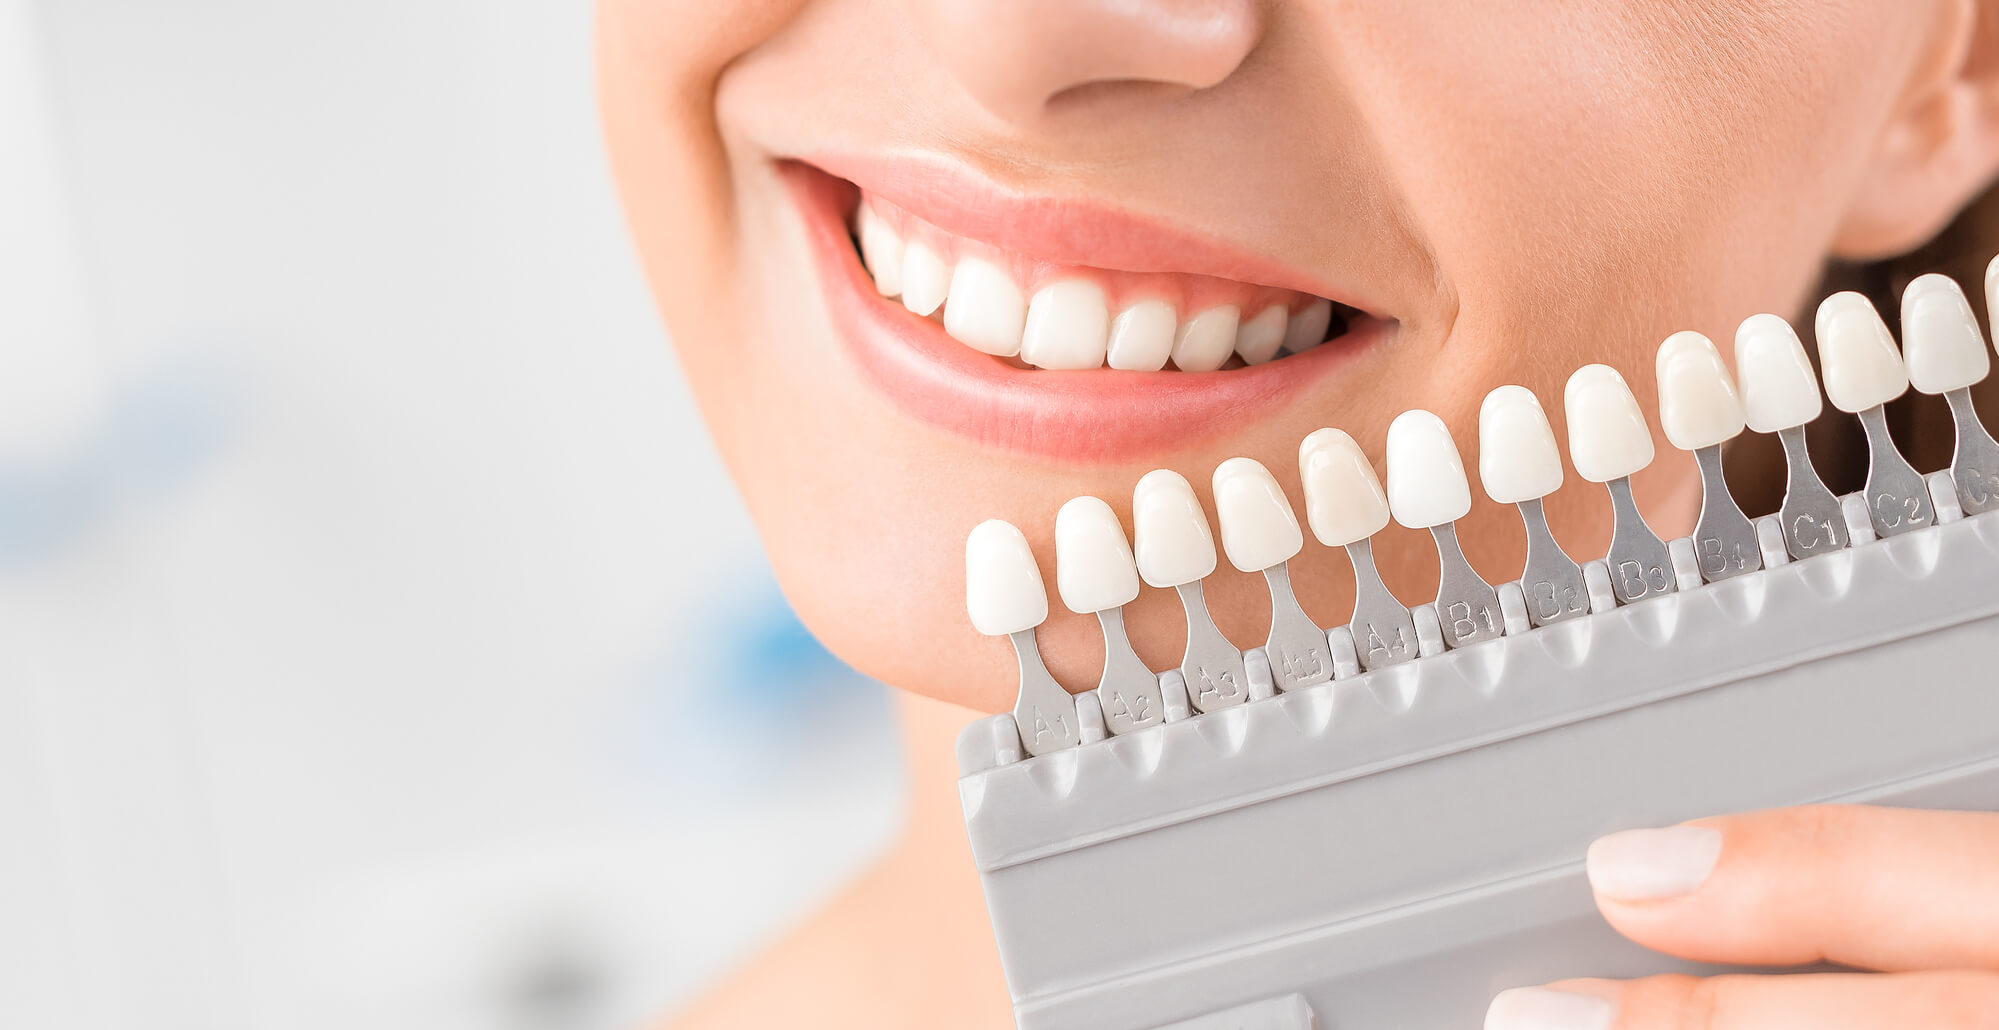 How to get the best dental implants in Tamiami?